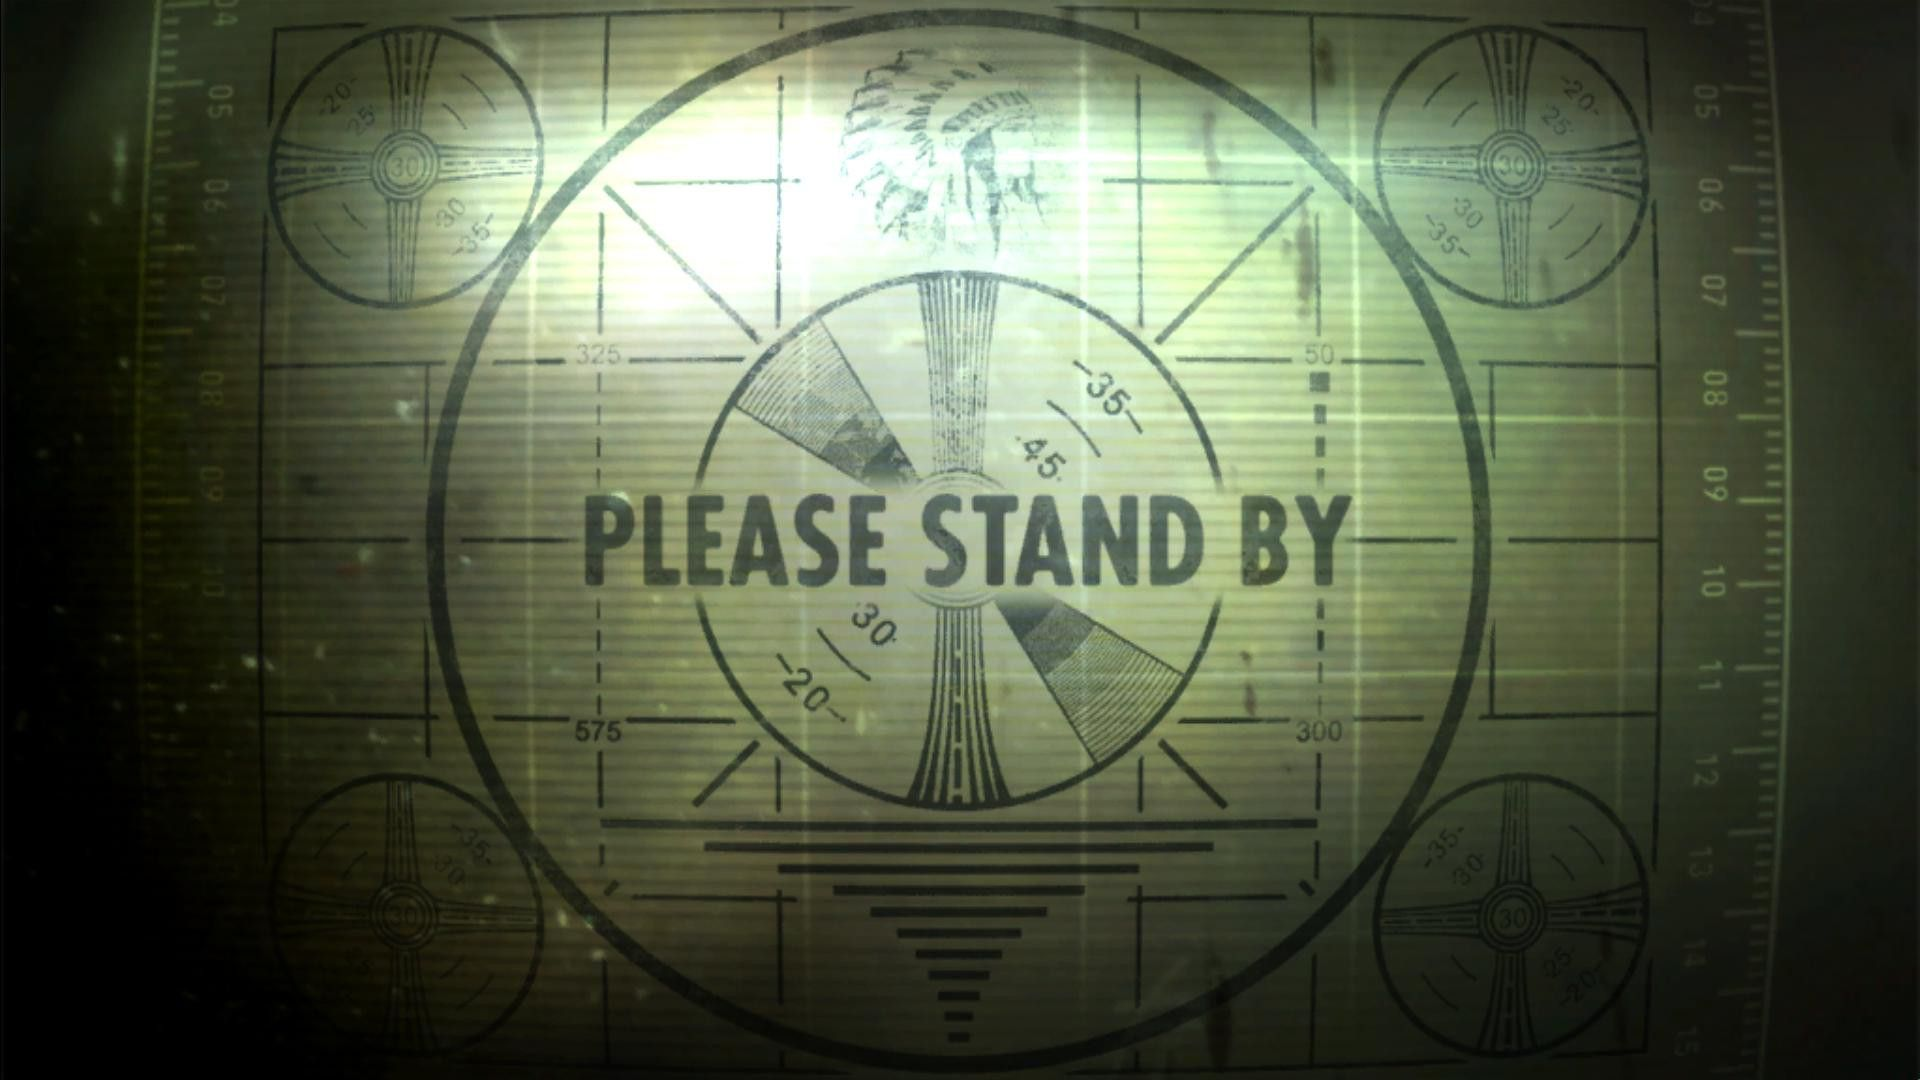 Fallout 4 Release Date 5 Things To Know Before E3 2015 Fallout4ReleaseDate